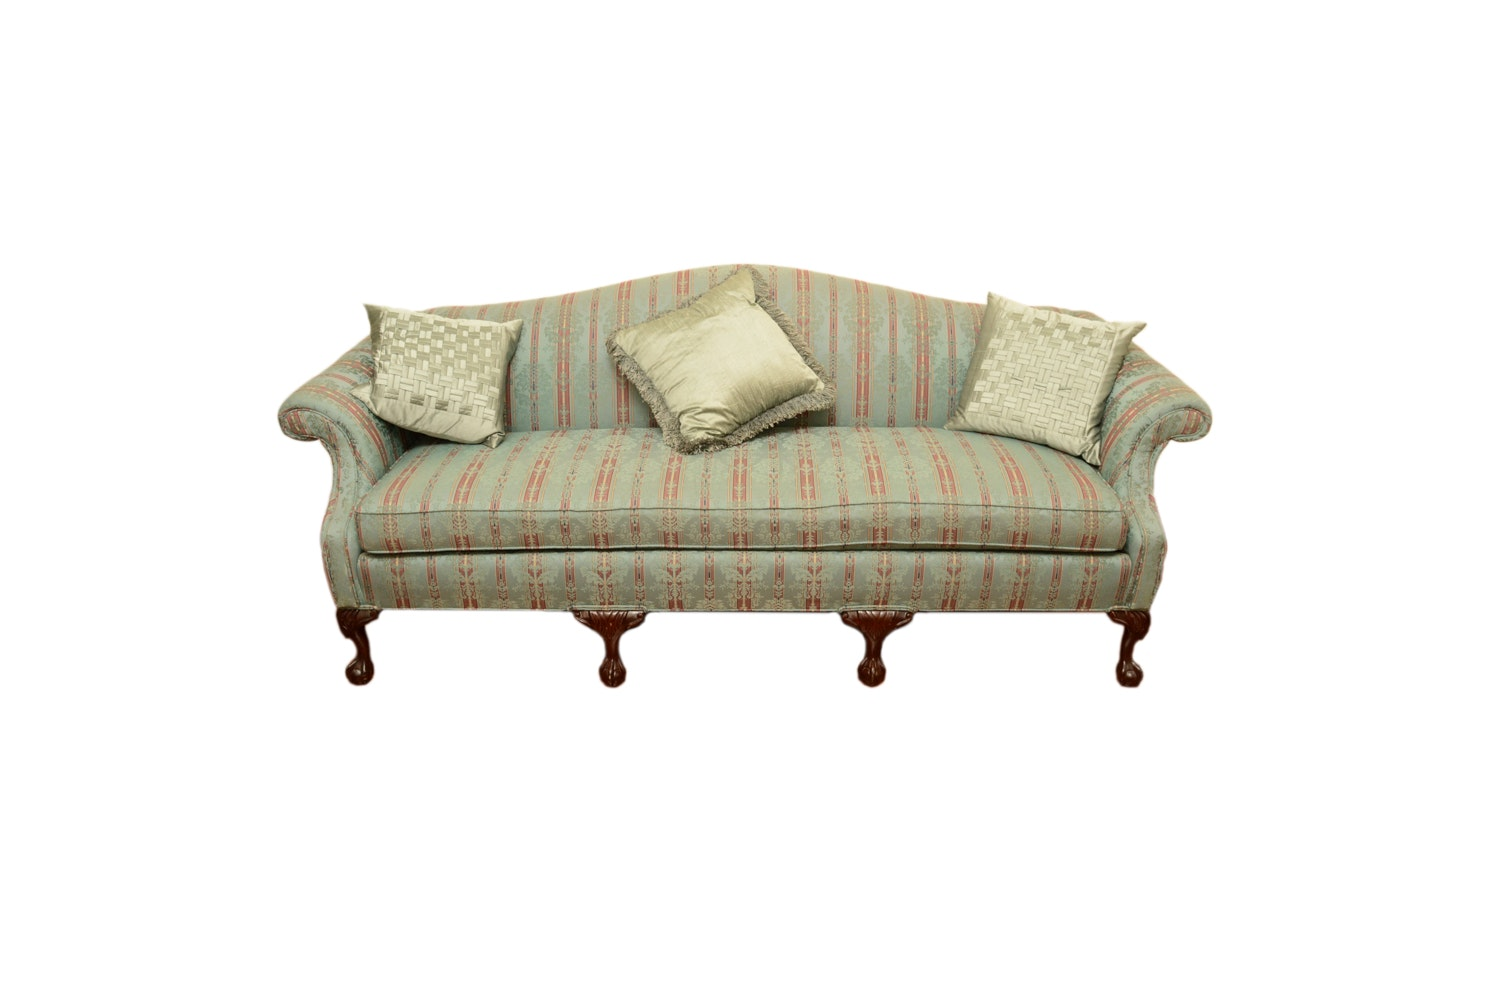 Vintage Chippendale Style Upholstered Sofa by Greene Brothers